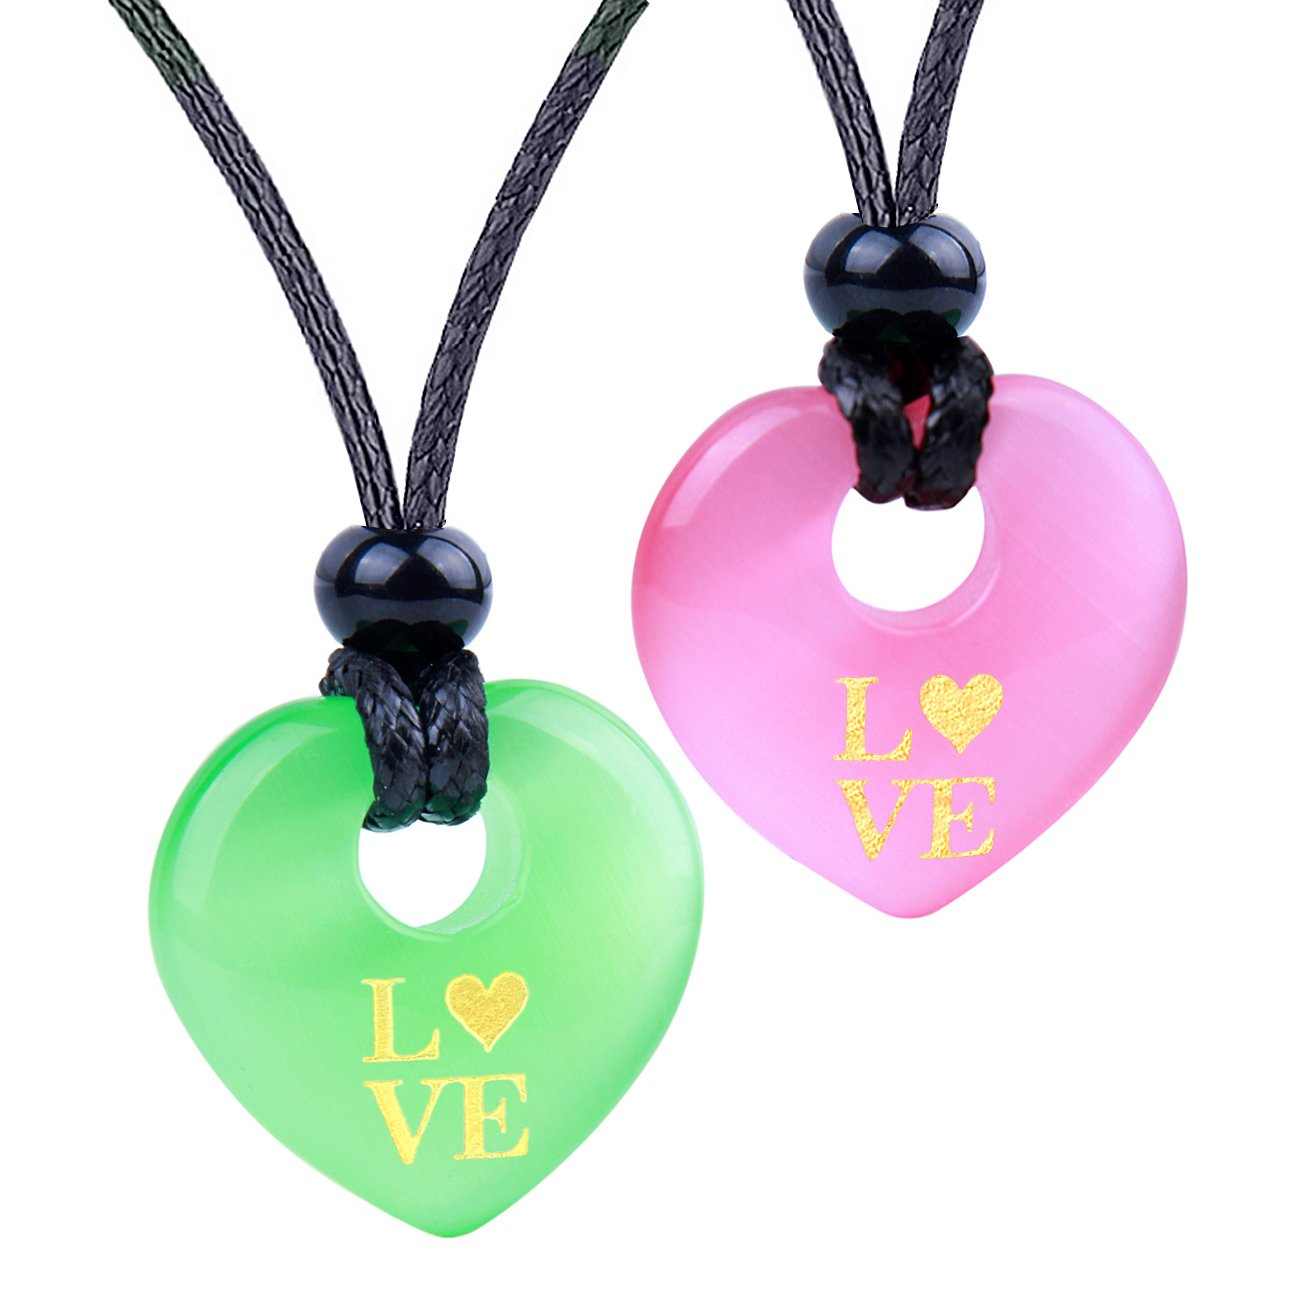 View All Lucky Hearts Unique Gemstone Jewelry Amulets and Gifts